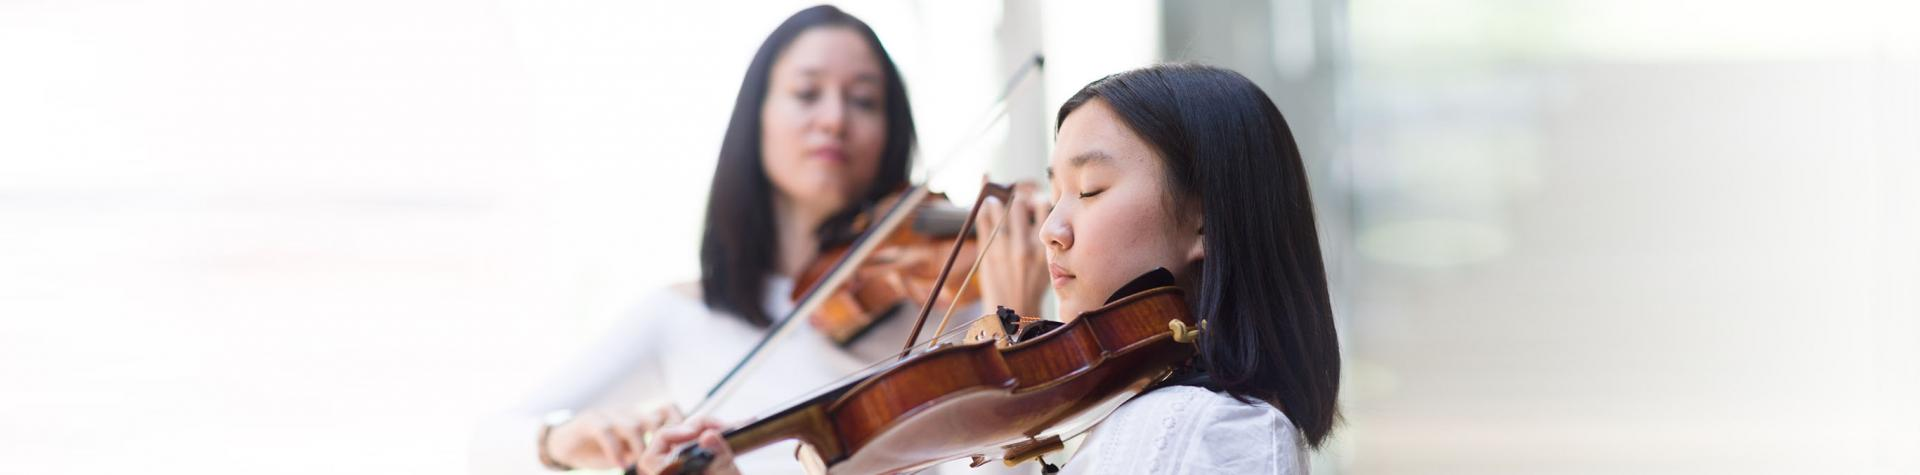 News - violin student and teacher